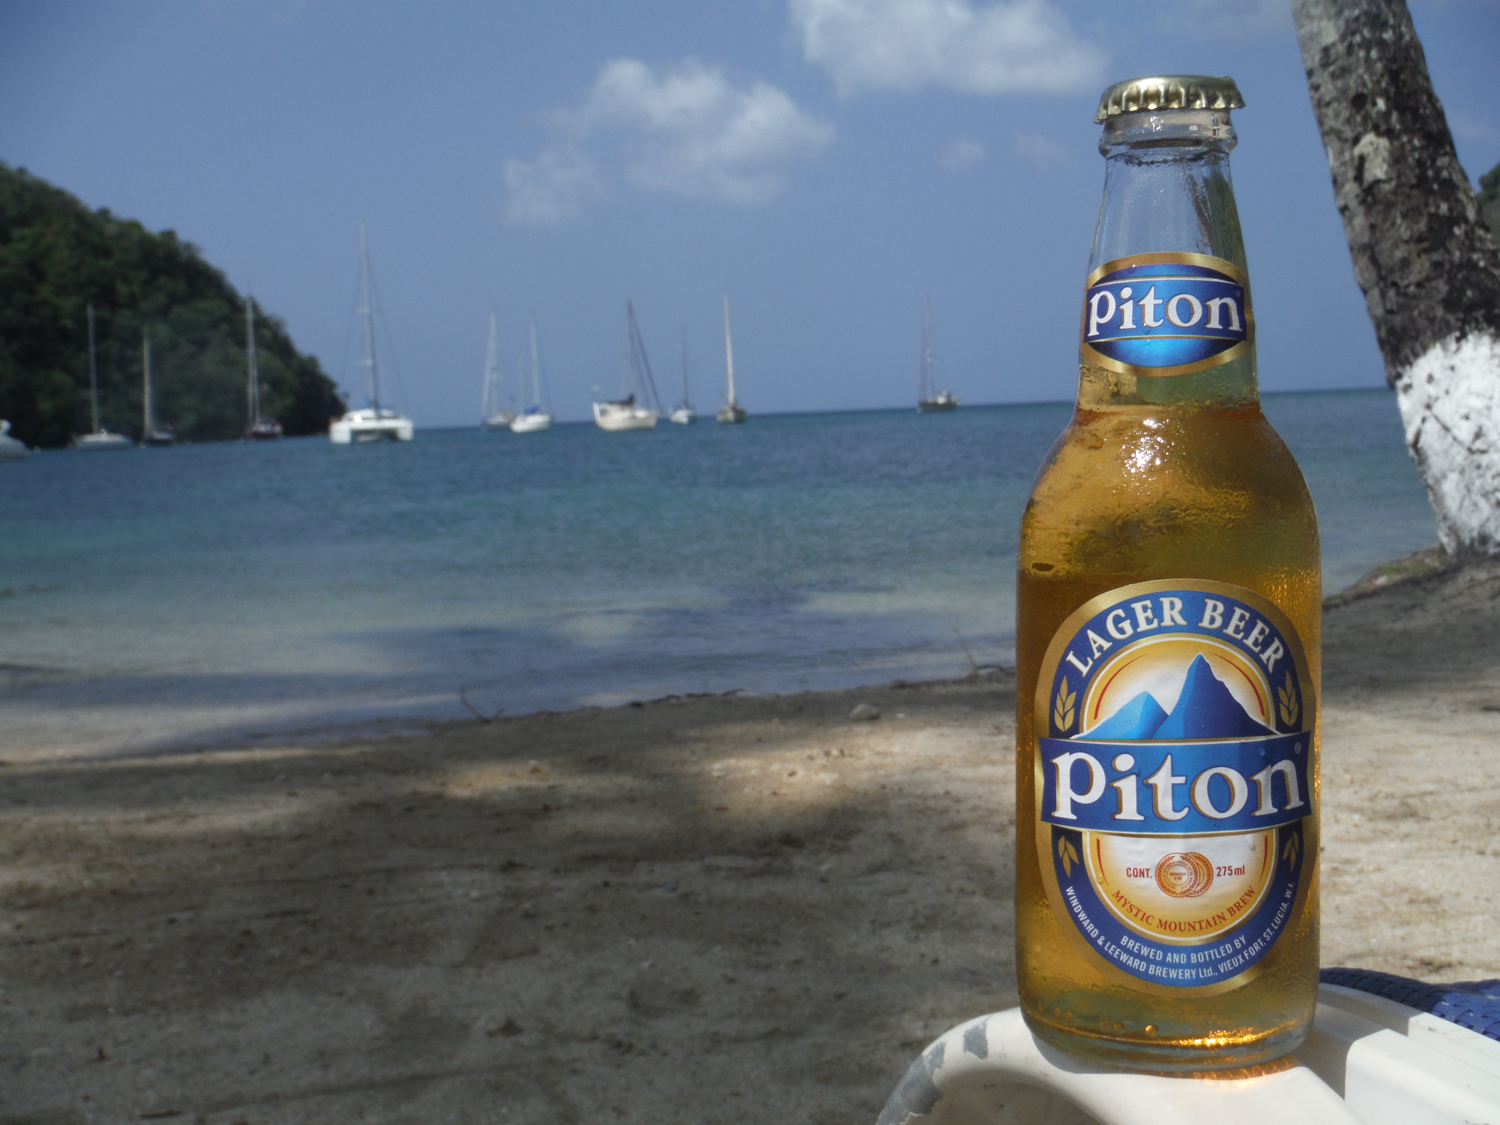 Piton is the St. Lucia beer on the Caribbean beaches.